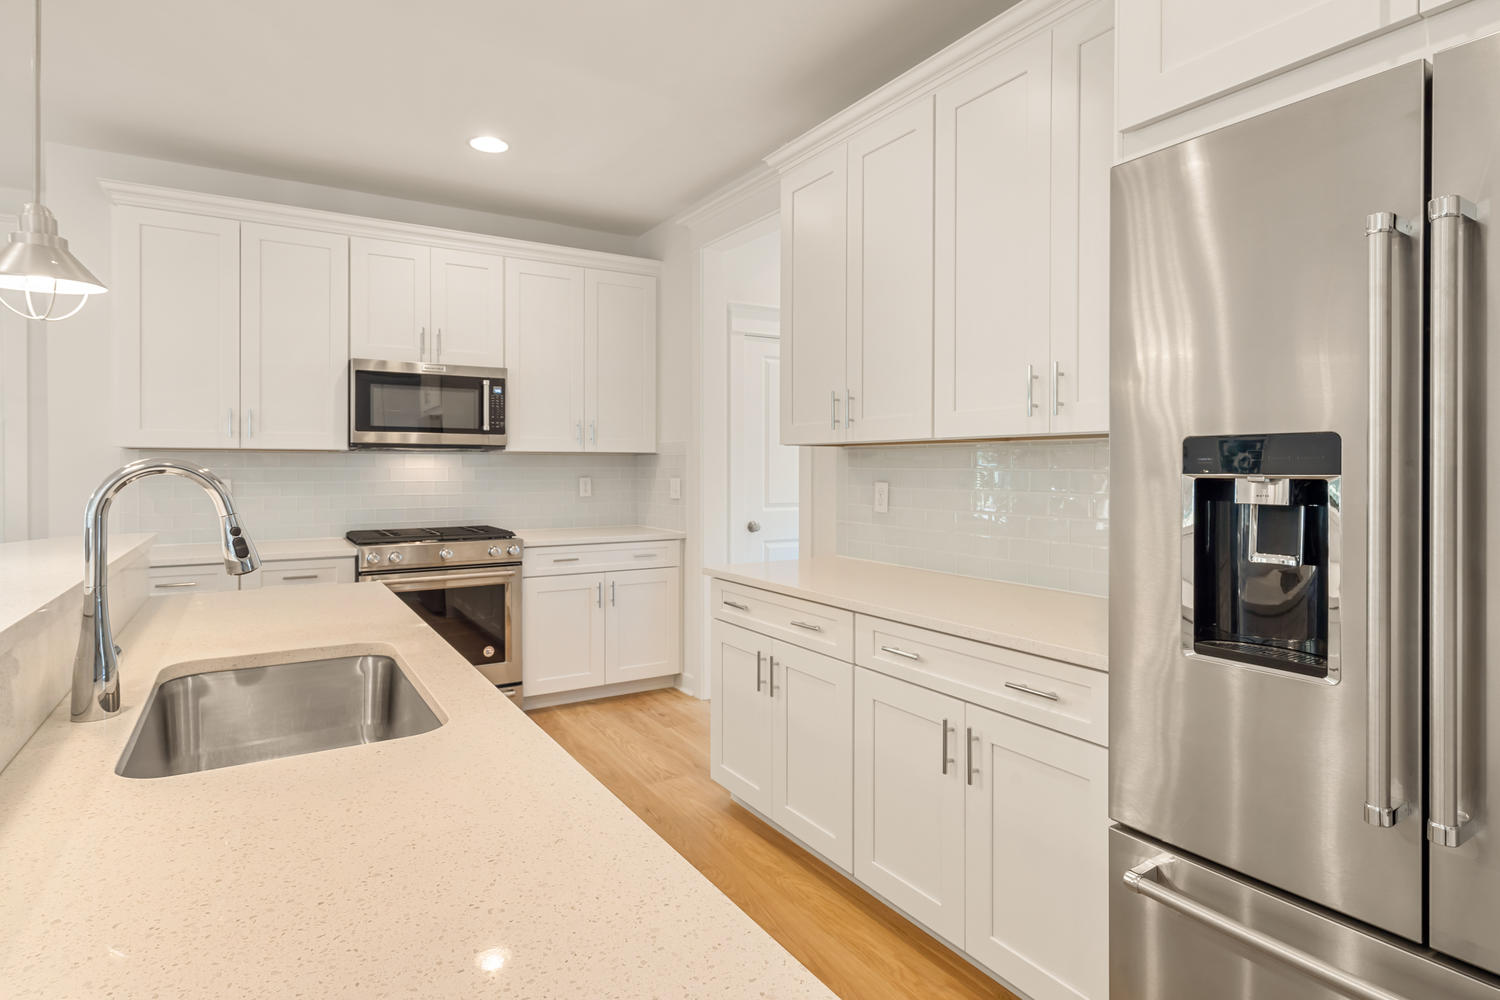 Kitchen with White Cabinets, Quartz Counters, and Stainless Steel Appliances